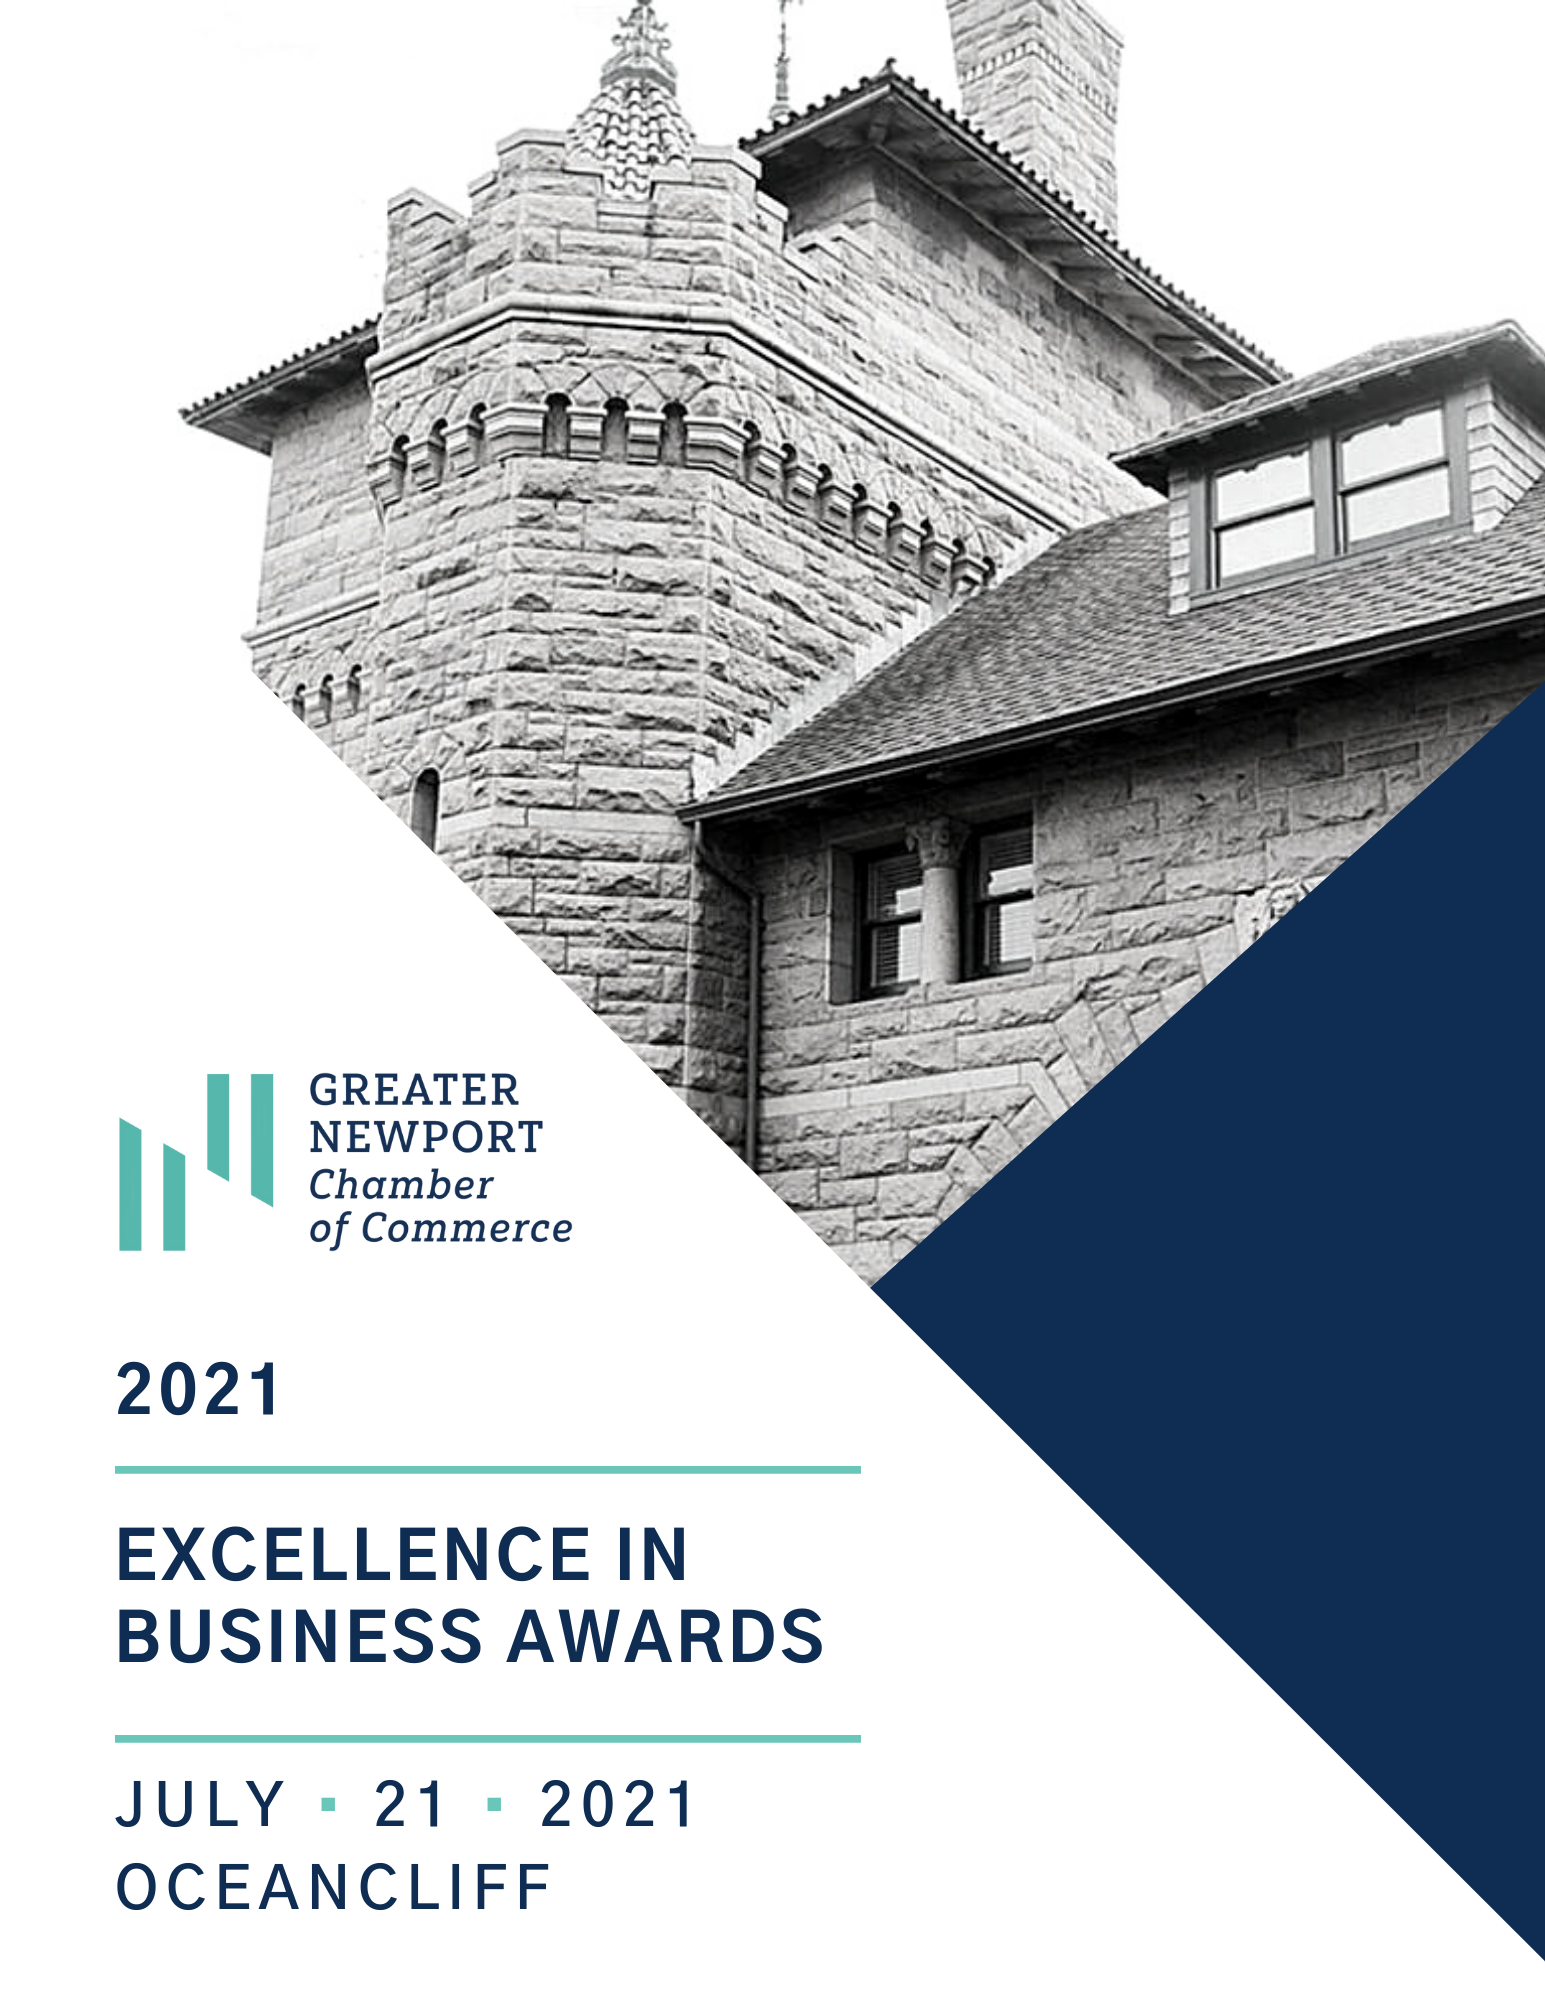 Image for 2021 Excellence in Business Awards at Oceancliff